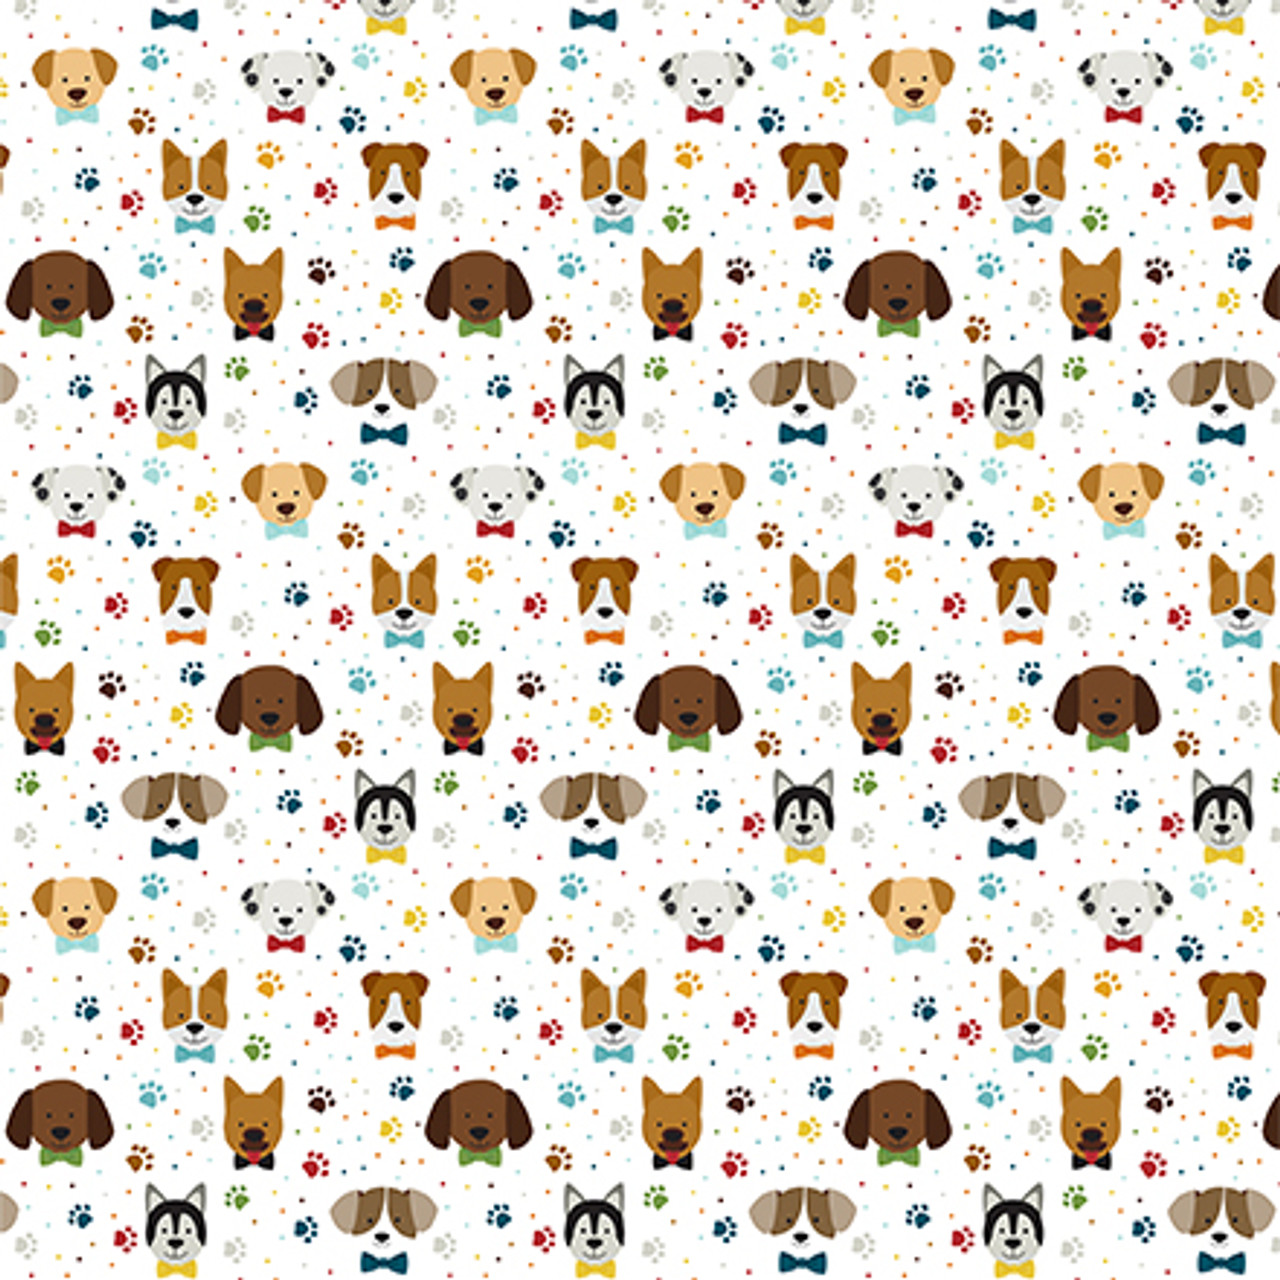 My Dog Collection Puppy Pals 12 x 12 Double-Sided Scrapbook Paper by Echo Park Paper